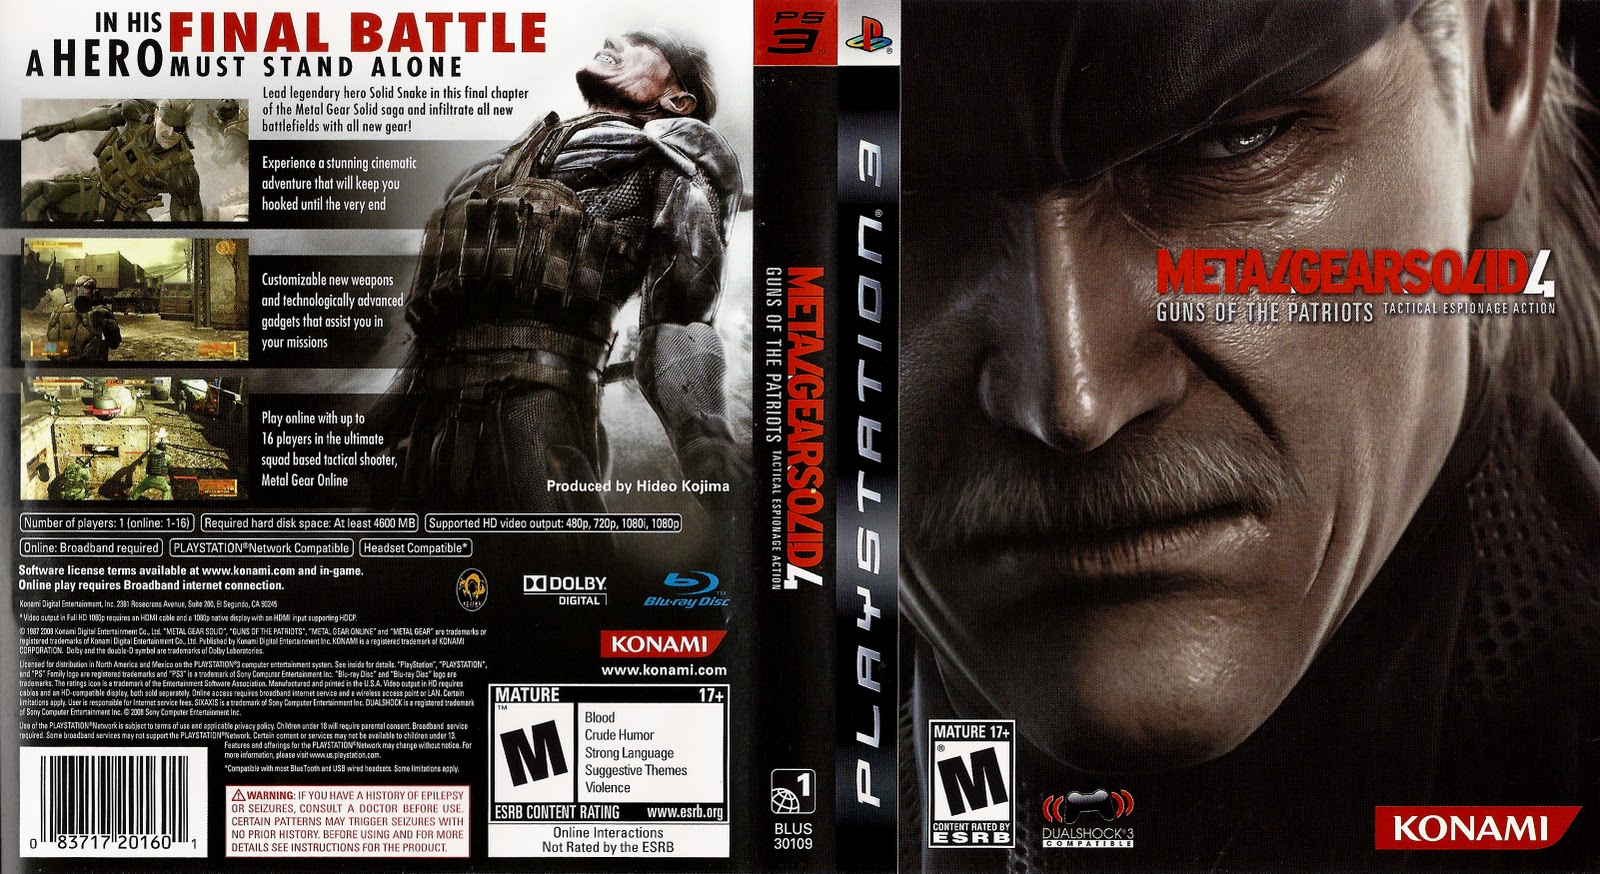 Metal Gear Solid 4 Custom PS3 Cover